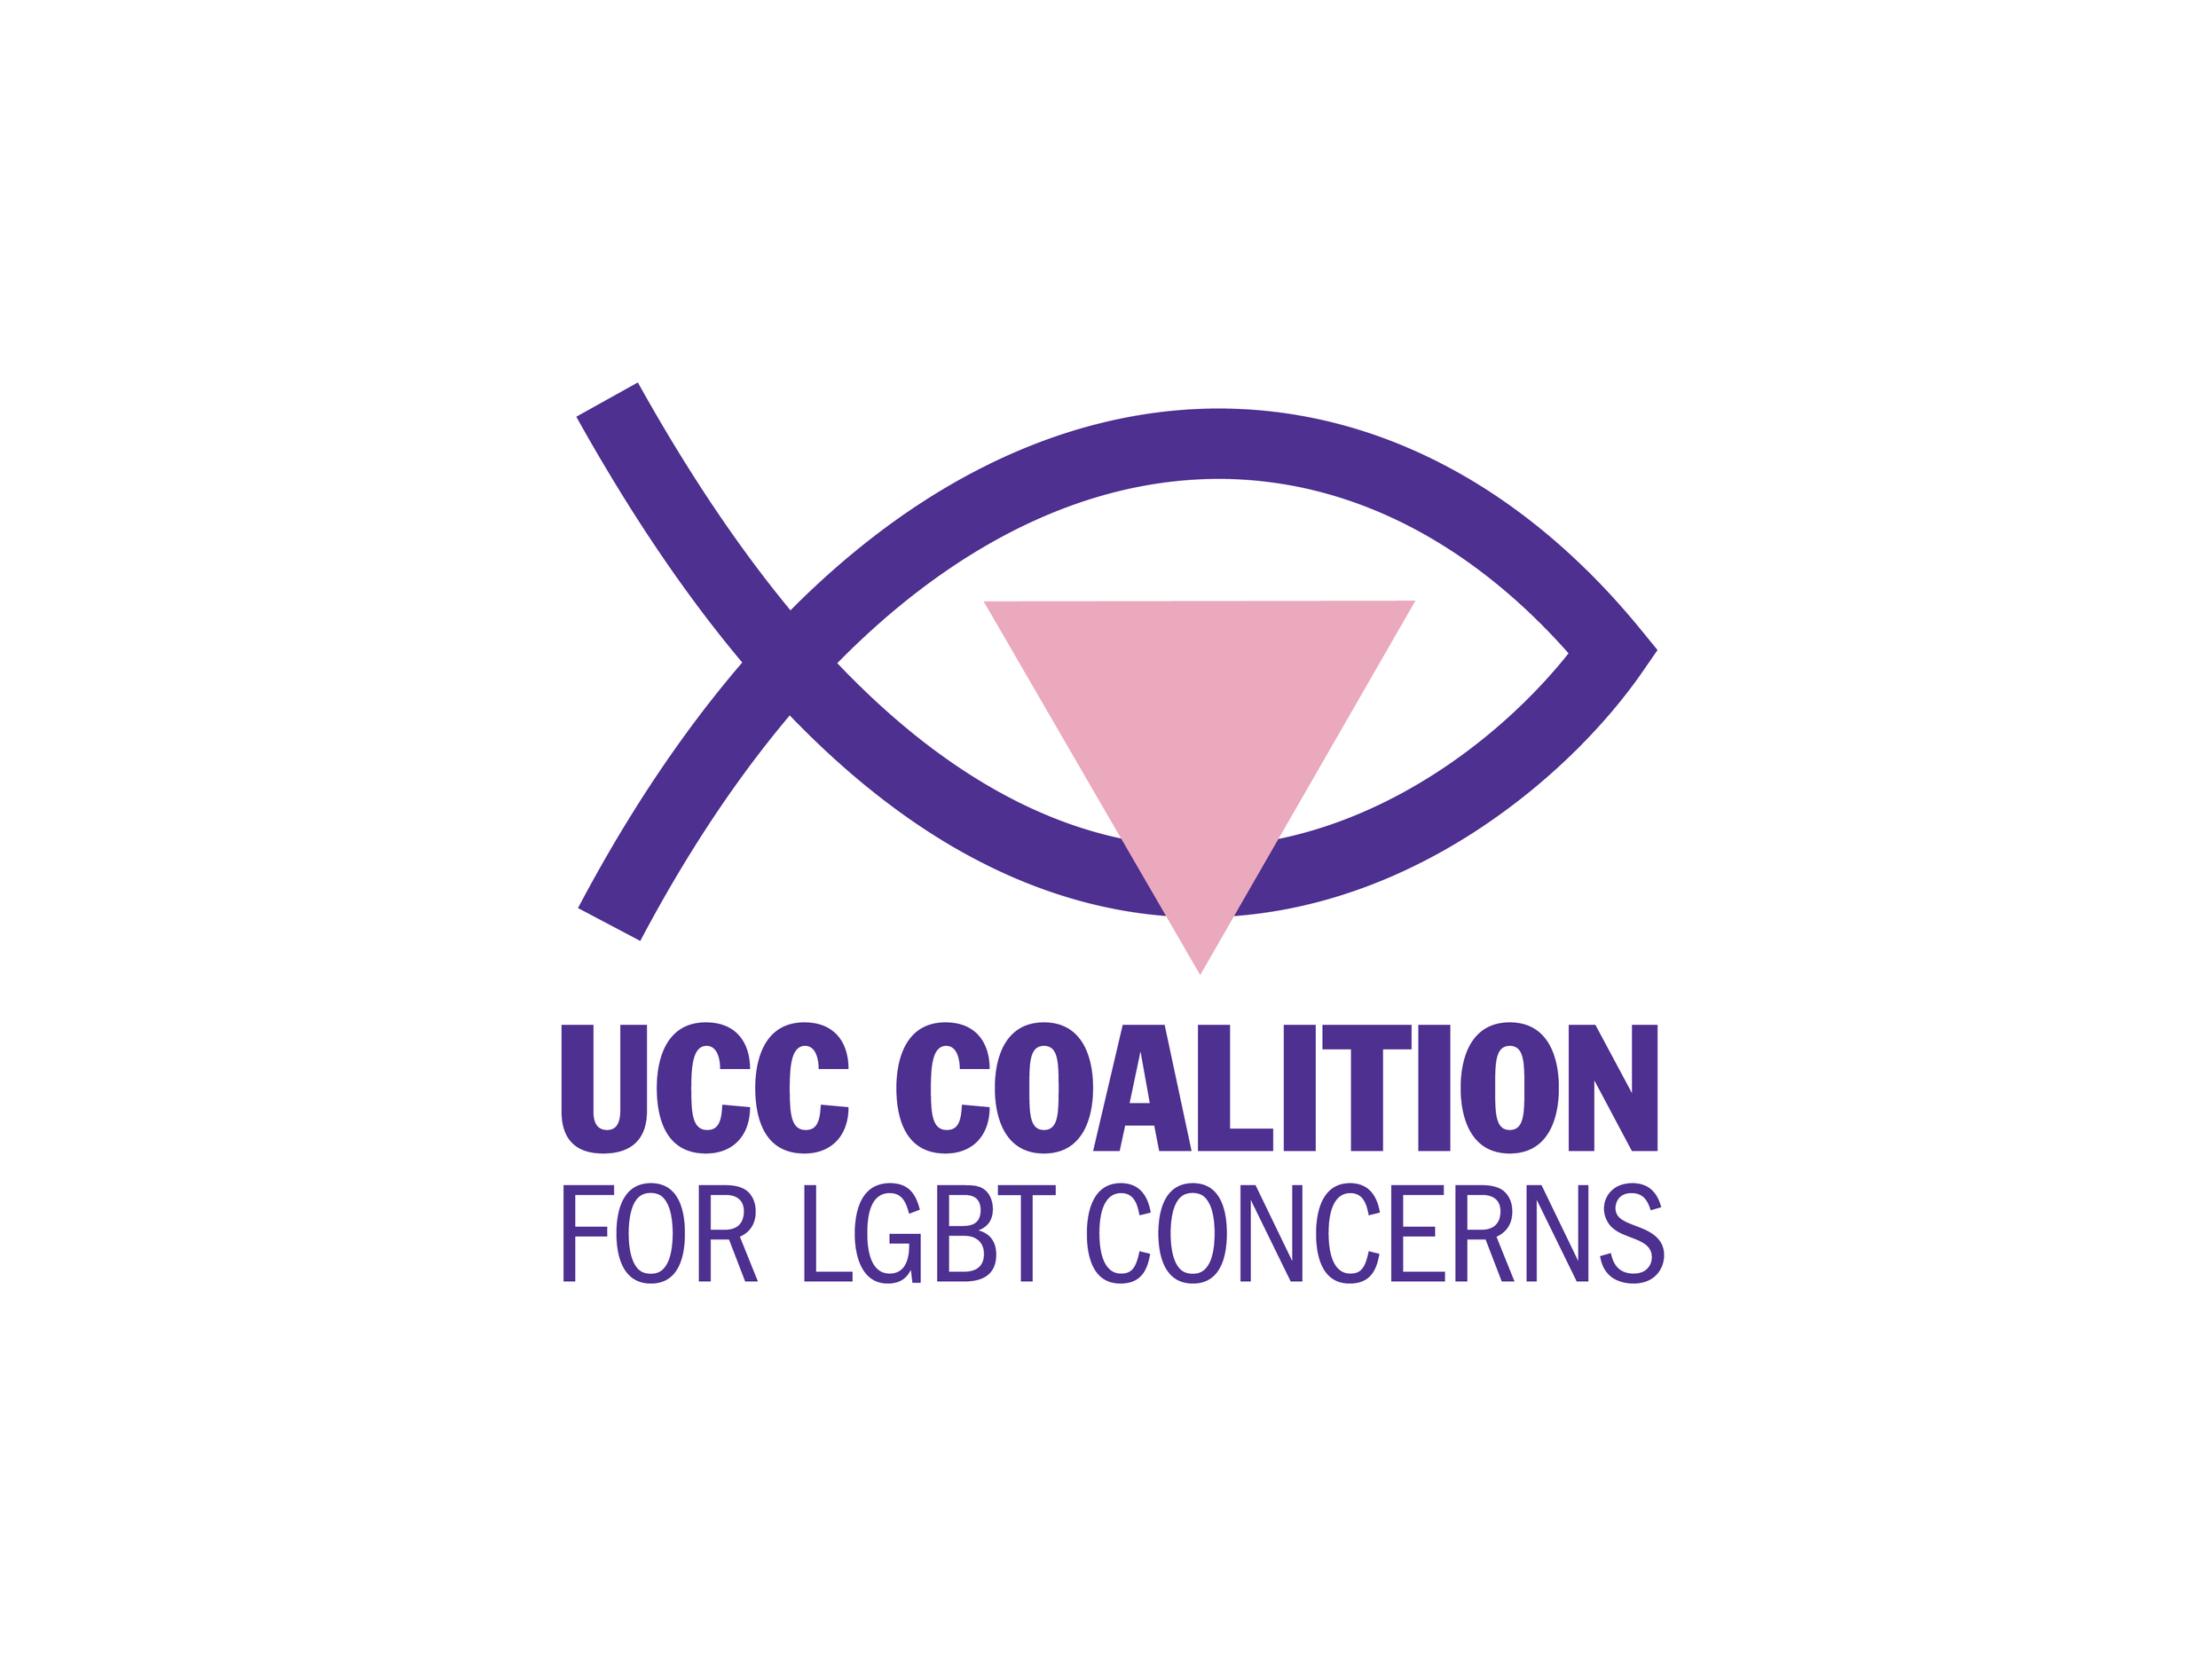 Open and Affirming Coalition of the United Church of Christ